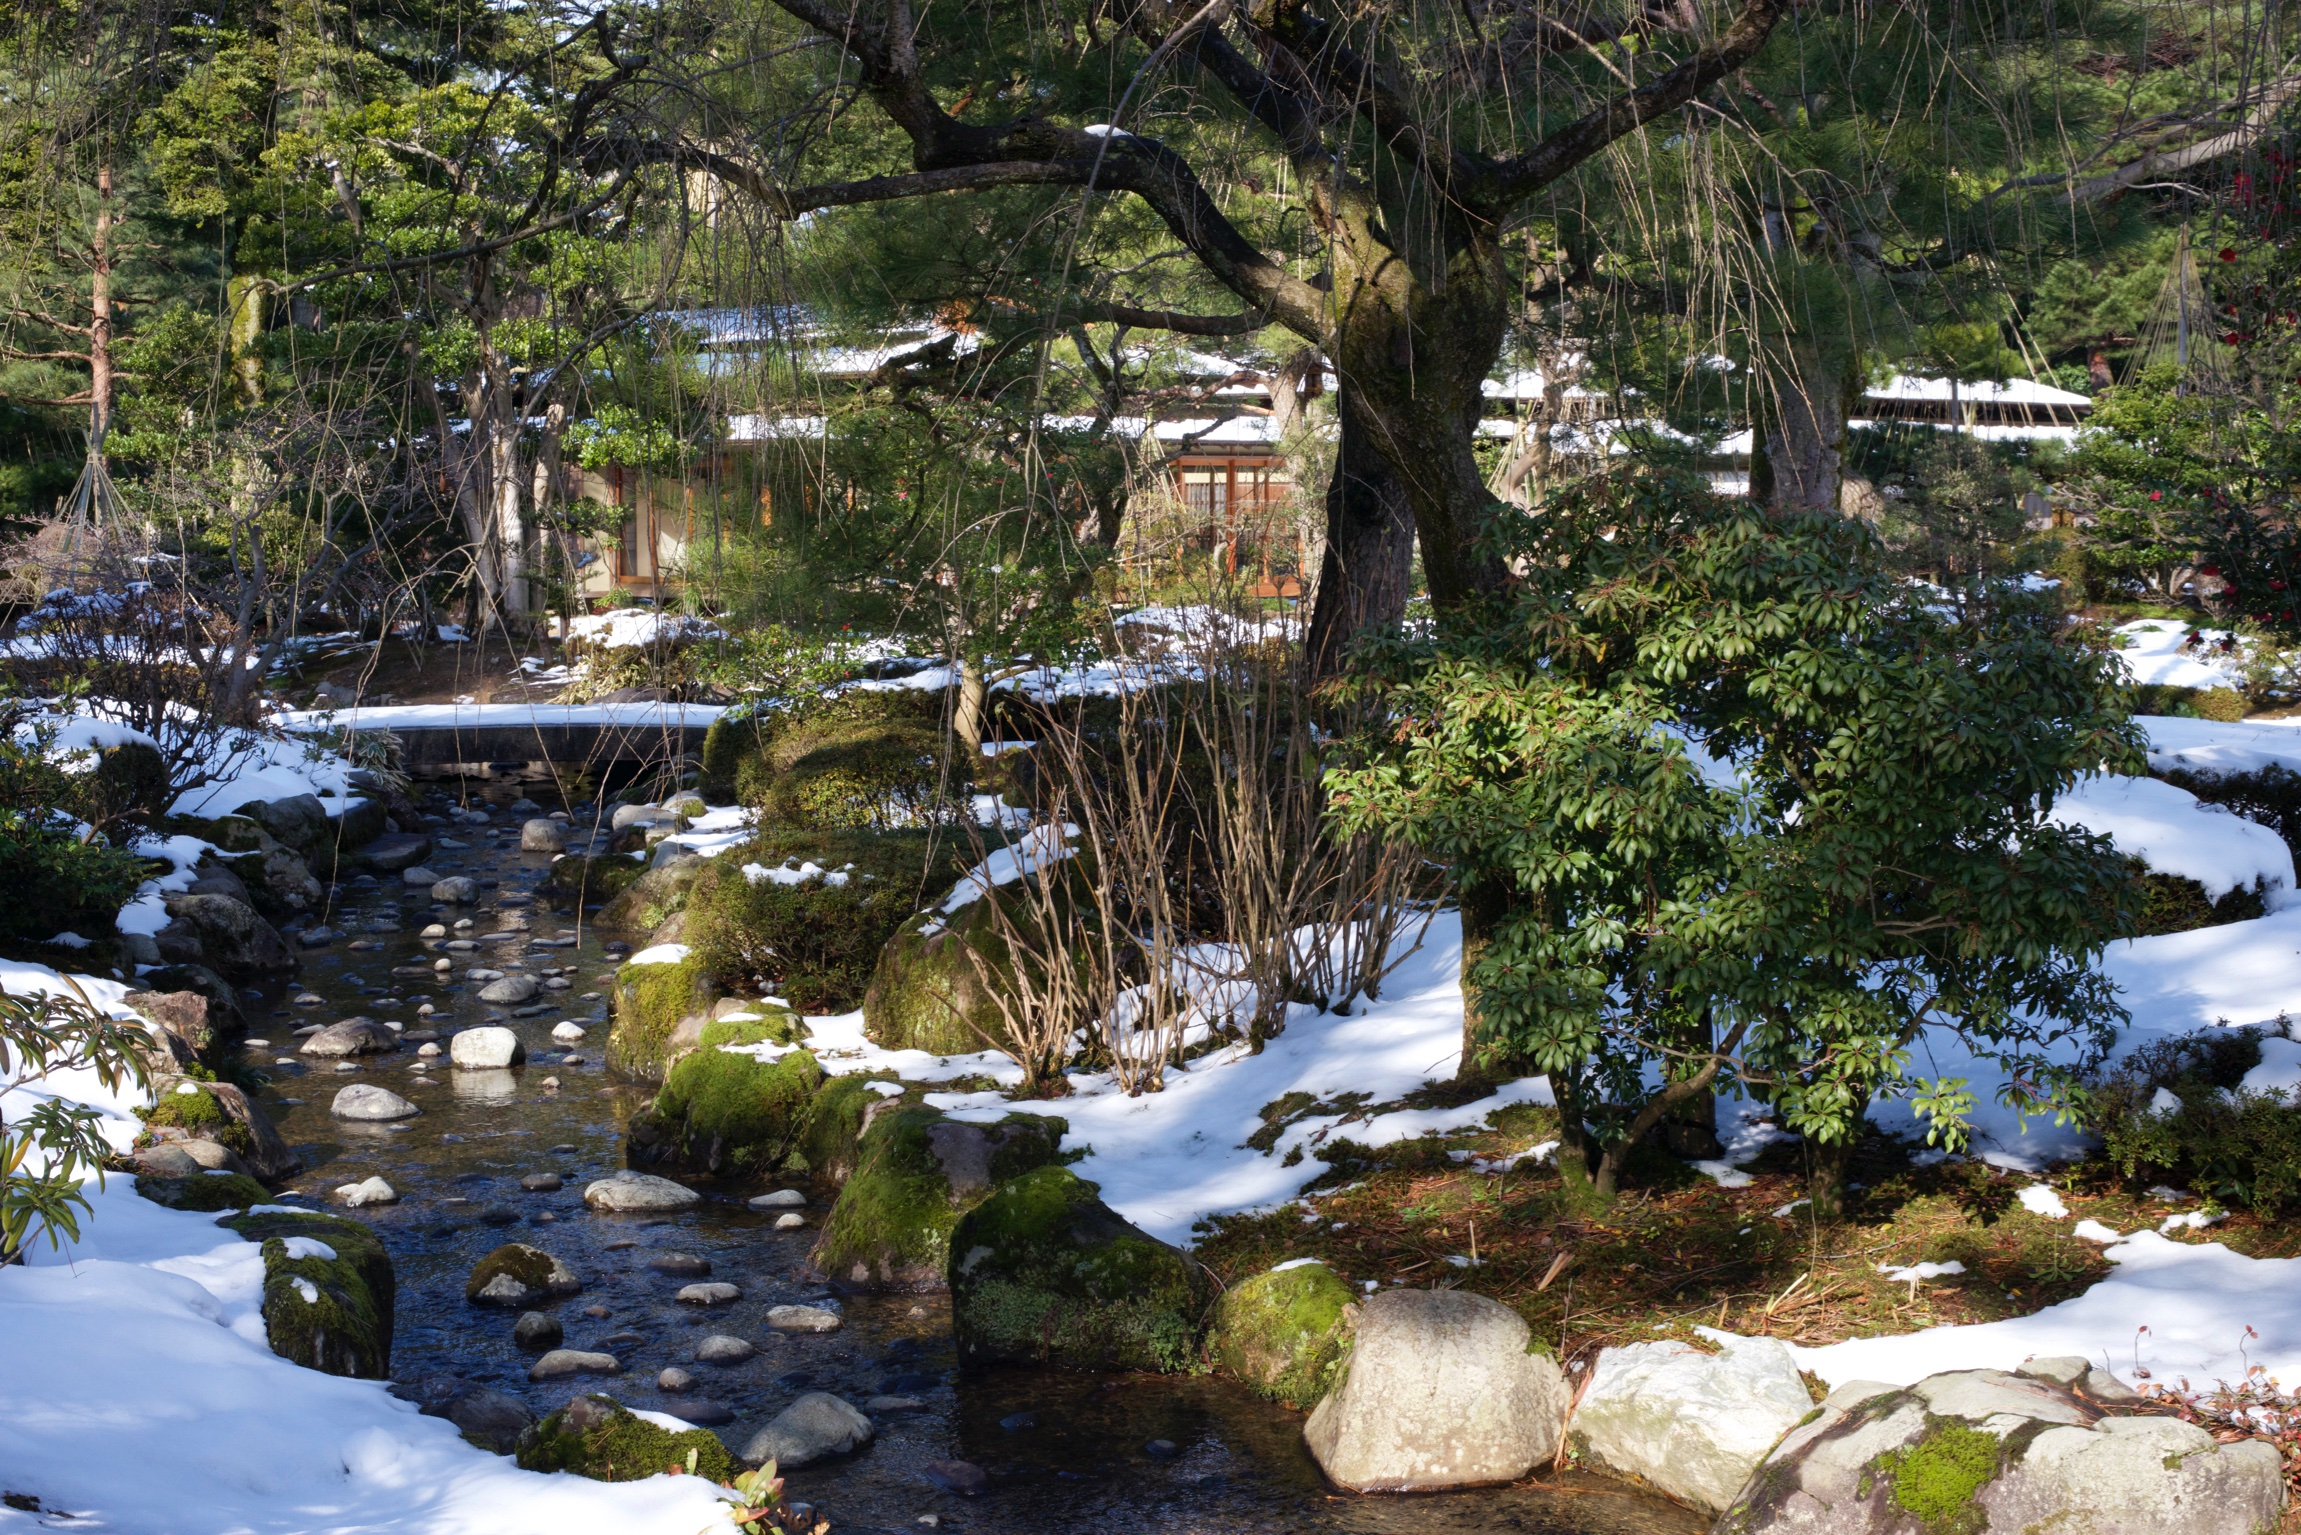 Kenroku-en, one of Japan's great garden